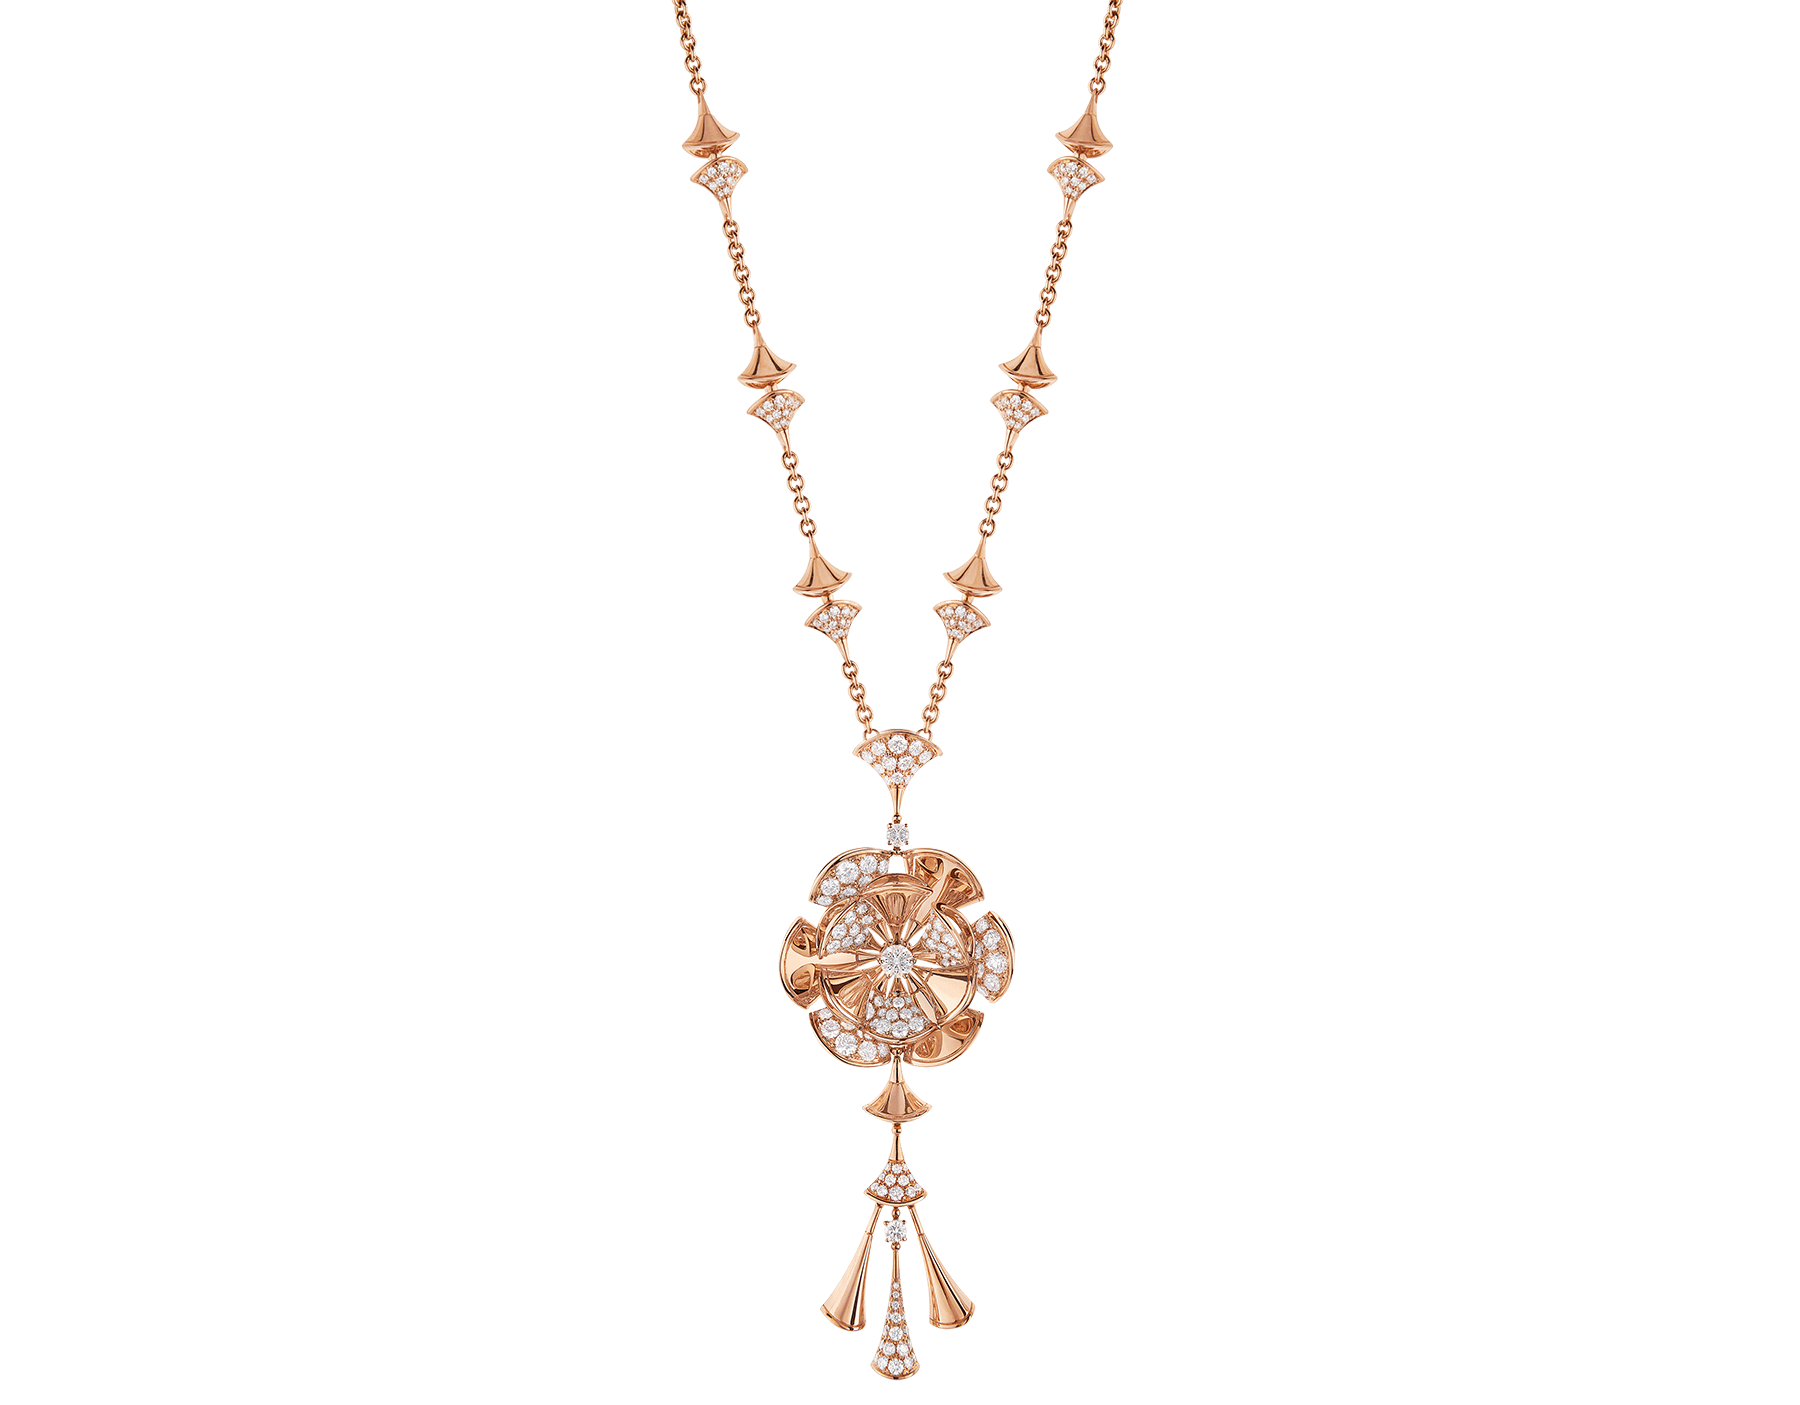 Collana DIVAS' DREAM in oro rosa 18 kt con tre diamanti e pavé di diamanti. 348361 image 1